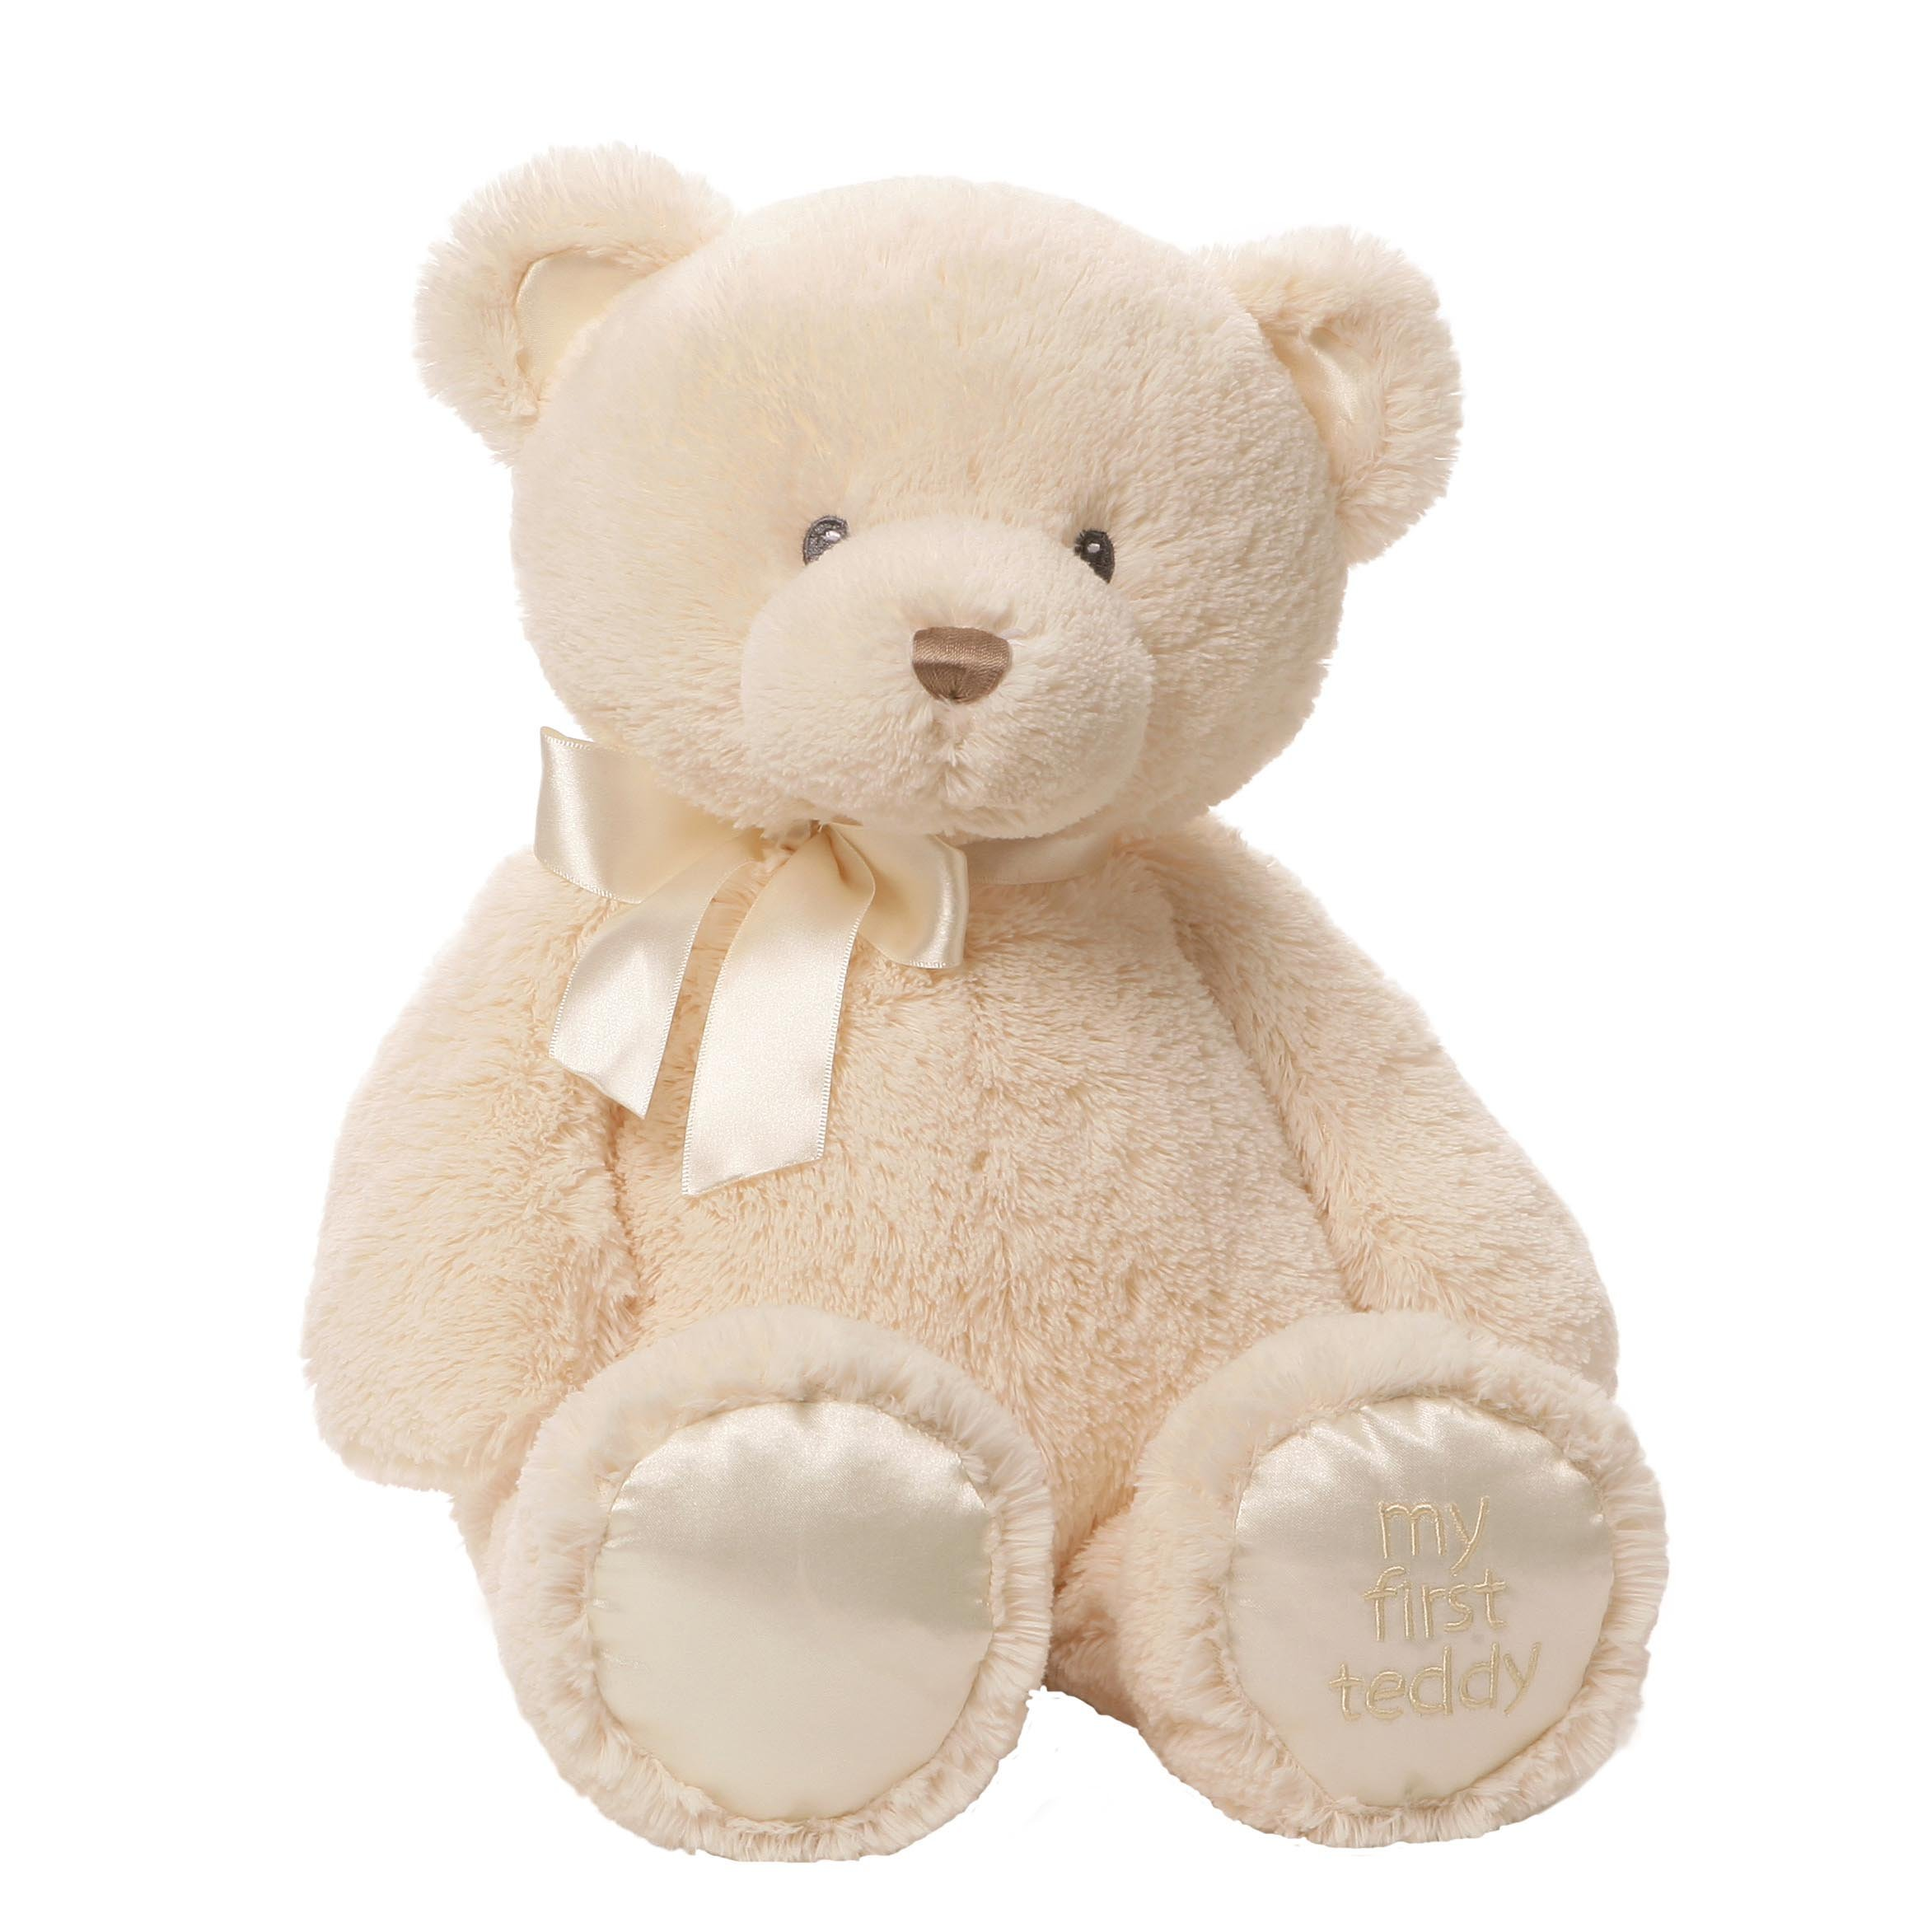 Gund Baby My 1st Teddy Plush, Cream, 18''